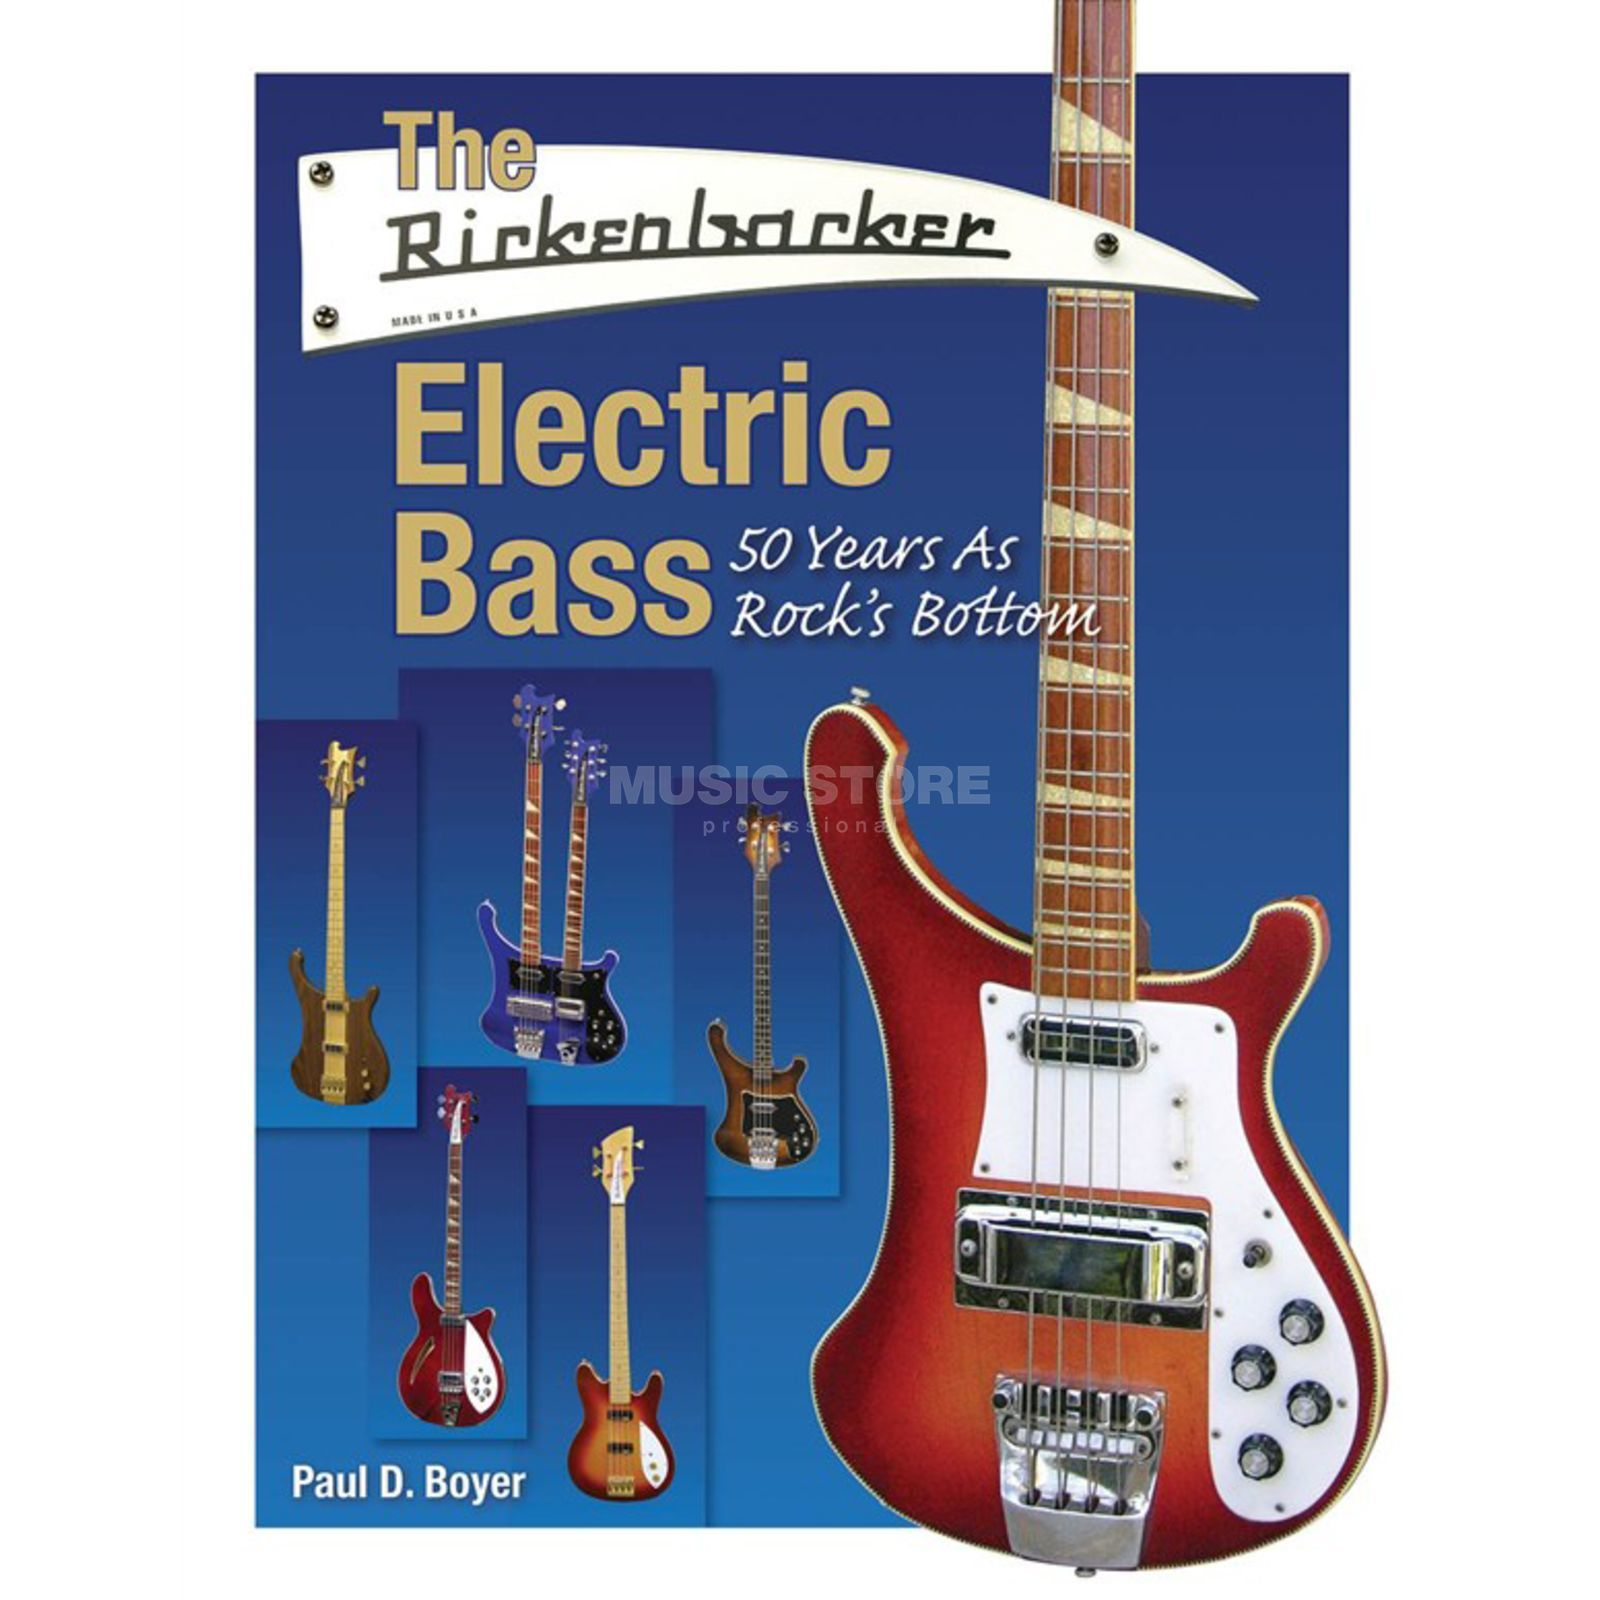 Hal Leonard The Rickenbacker Electric Bass 50 Years As Rock's Bottom Produktbillede